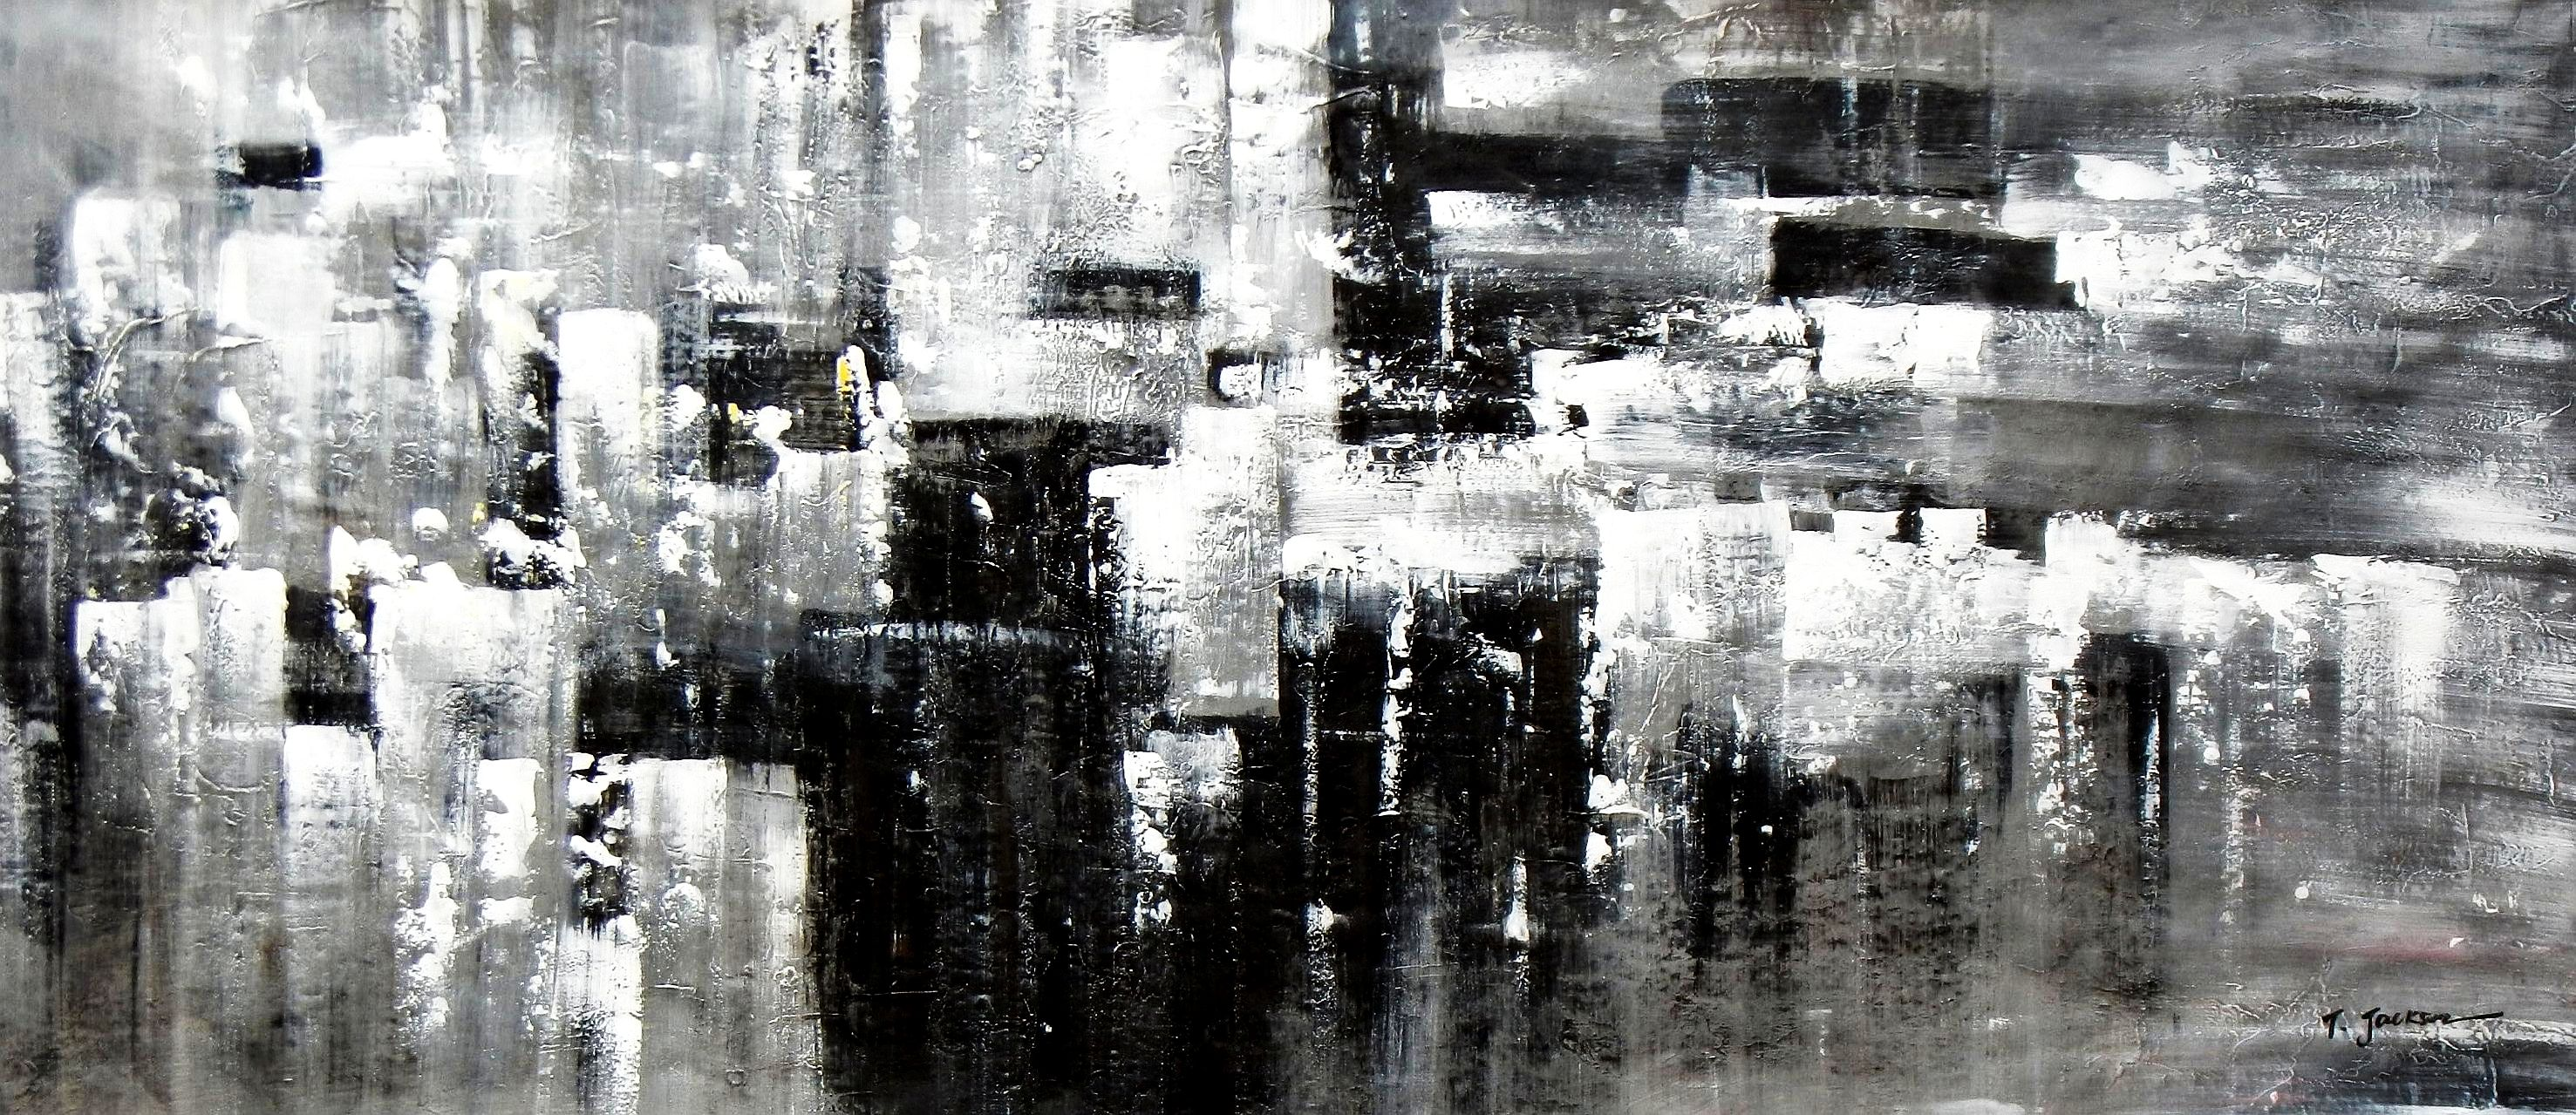 Abstrakt - Nacht in New York t92078 75x180cm Ölgemälde handgemalt